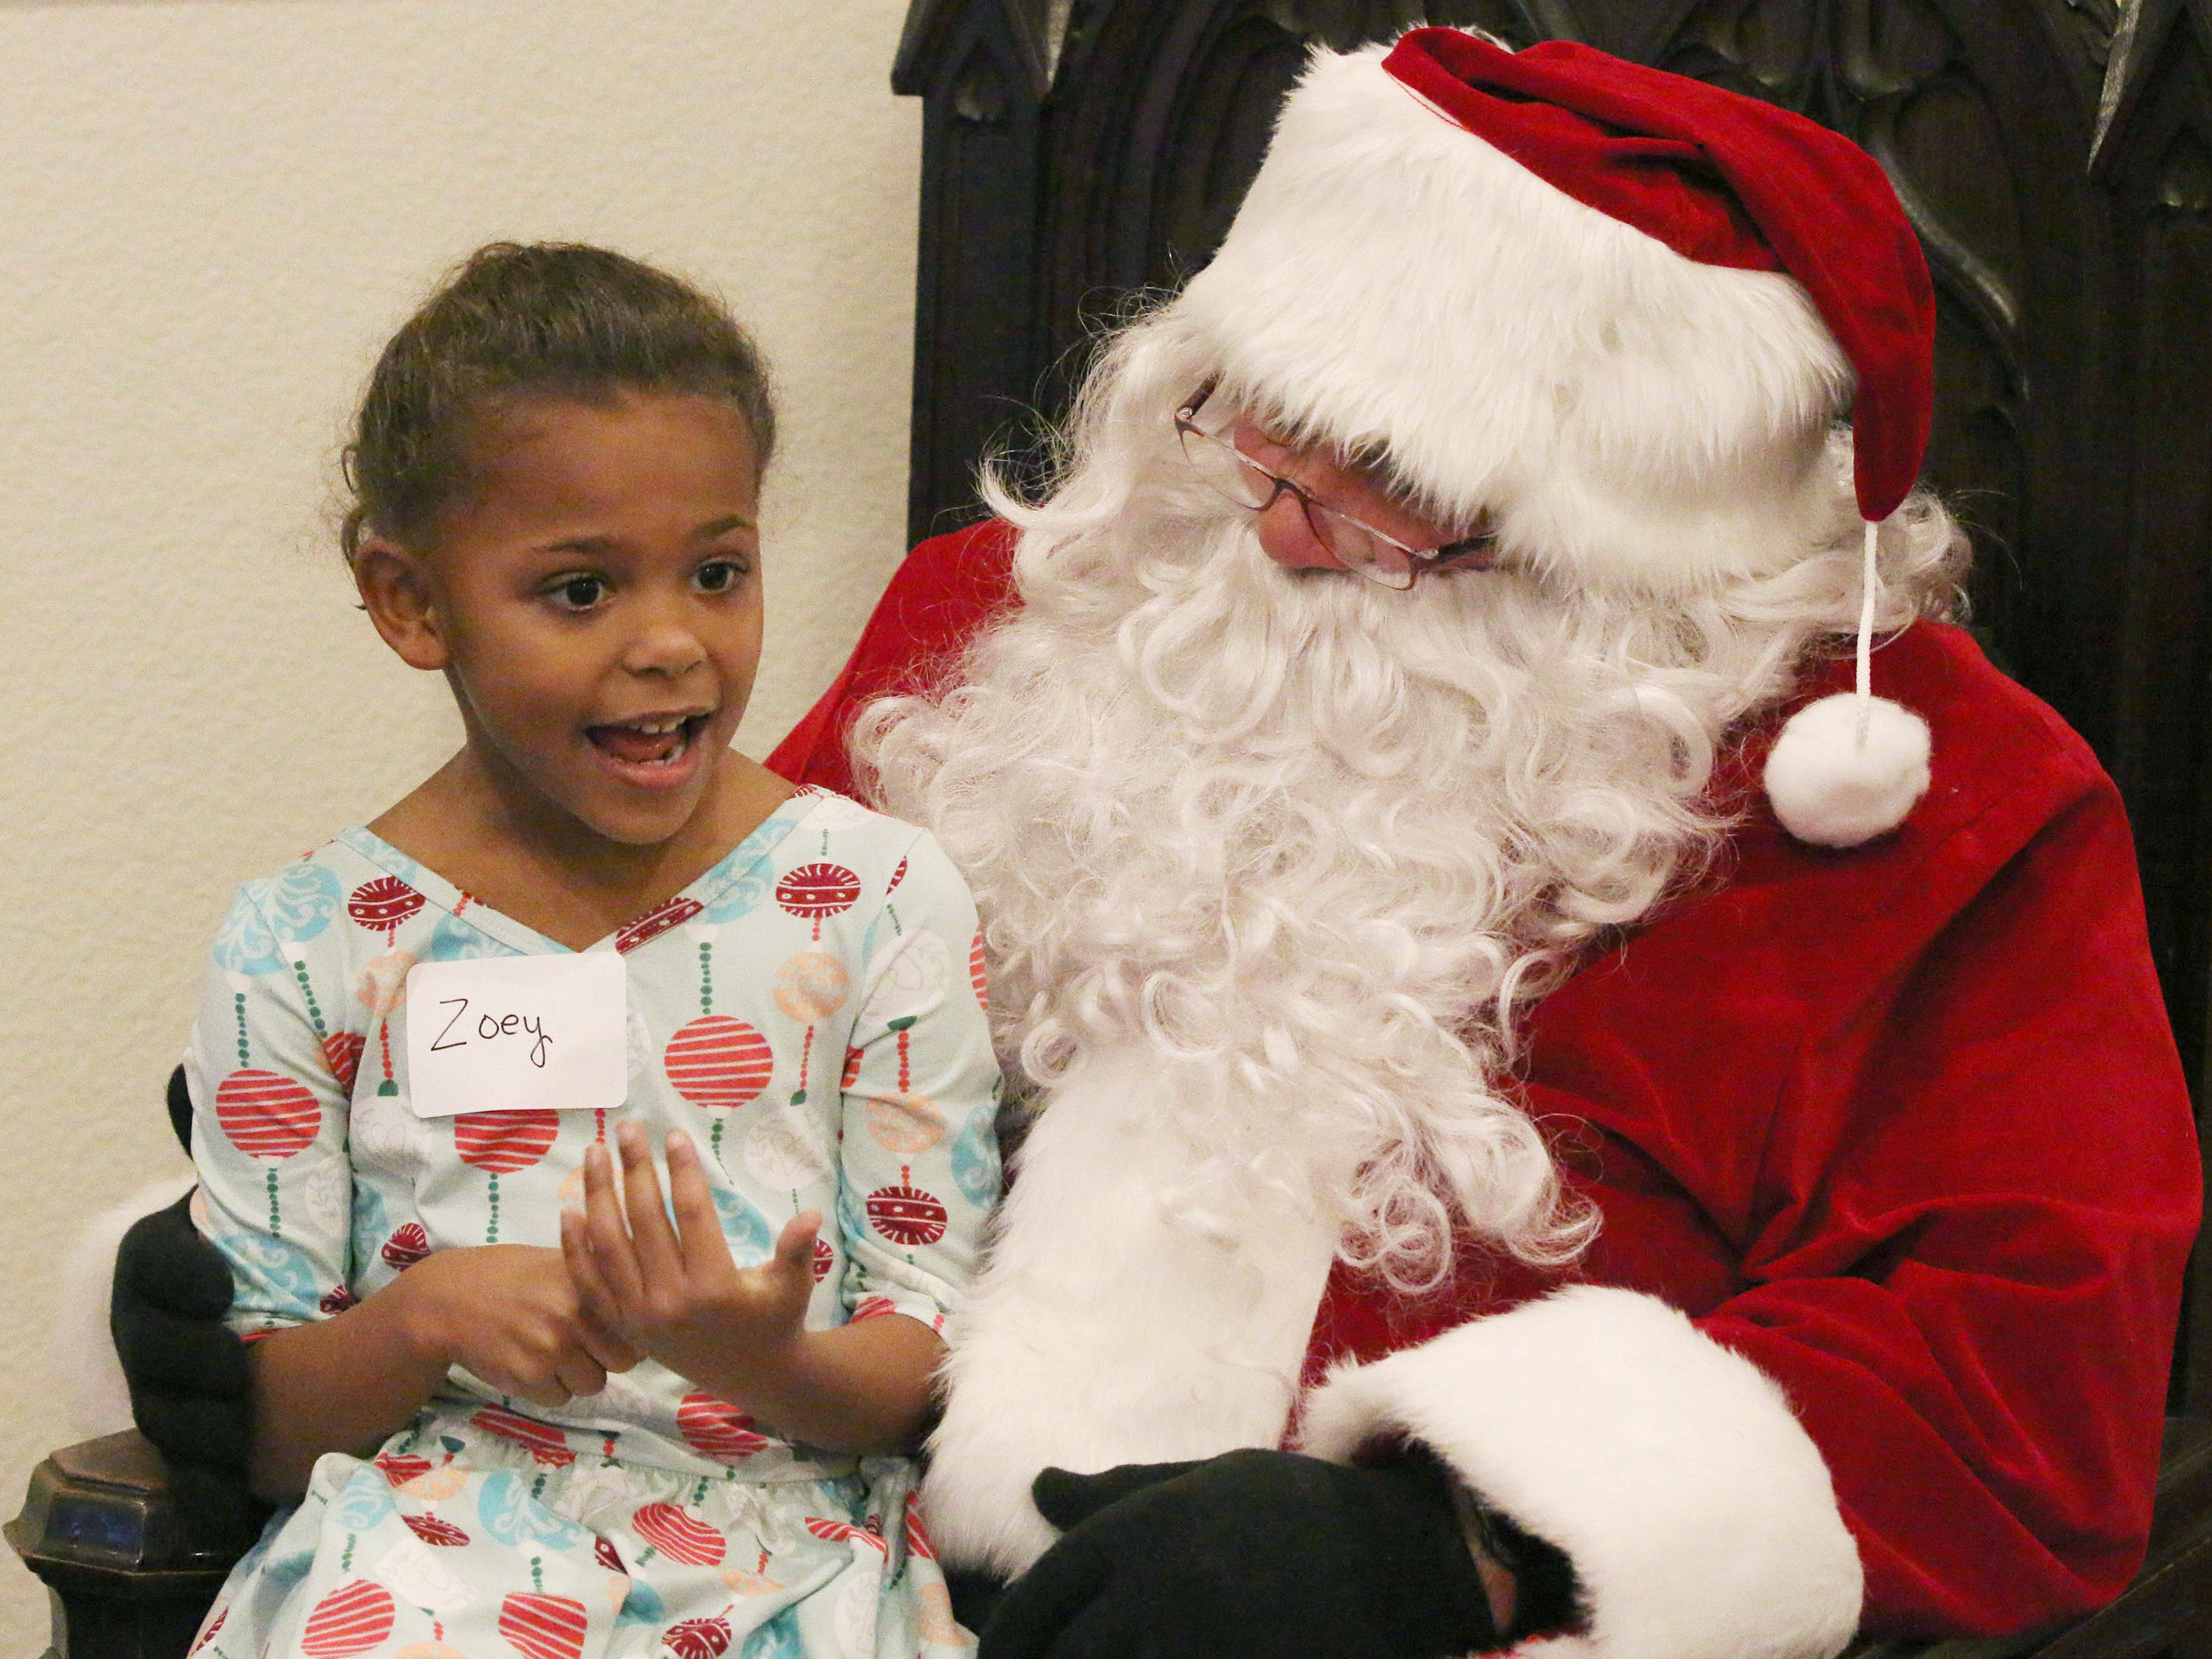 Zoey Arnhoelter, 5, of Sheboygan describes her Christmas list to Santa Claus during Cookies with Santa at Zimmer Westview Funeral and Cremation Care Center Saturday, December 1, 2018, in Howards Grove, Wis.  The firm also plans to have Santa at Ballhorn Chapels on December 8, 2018.